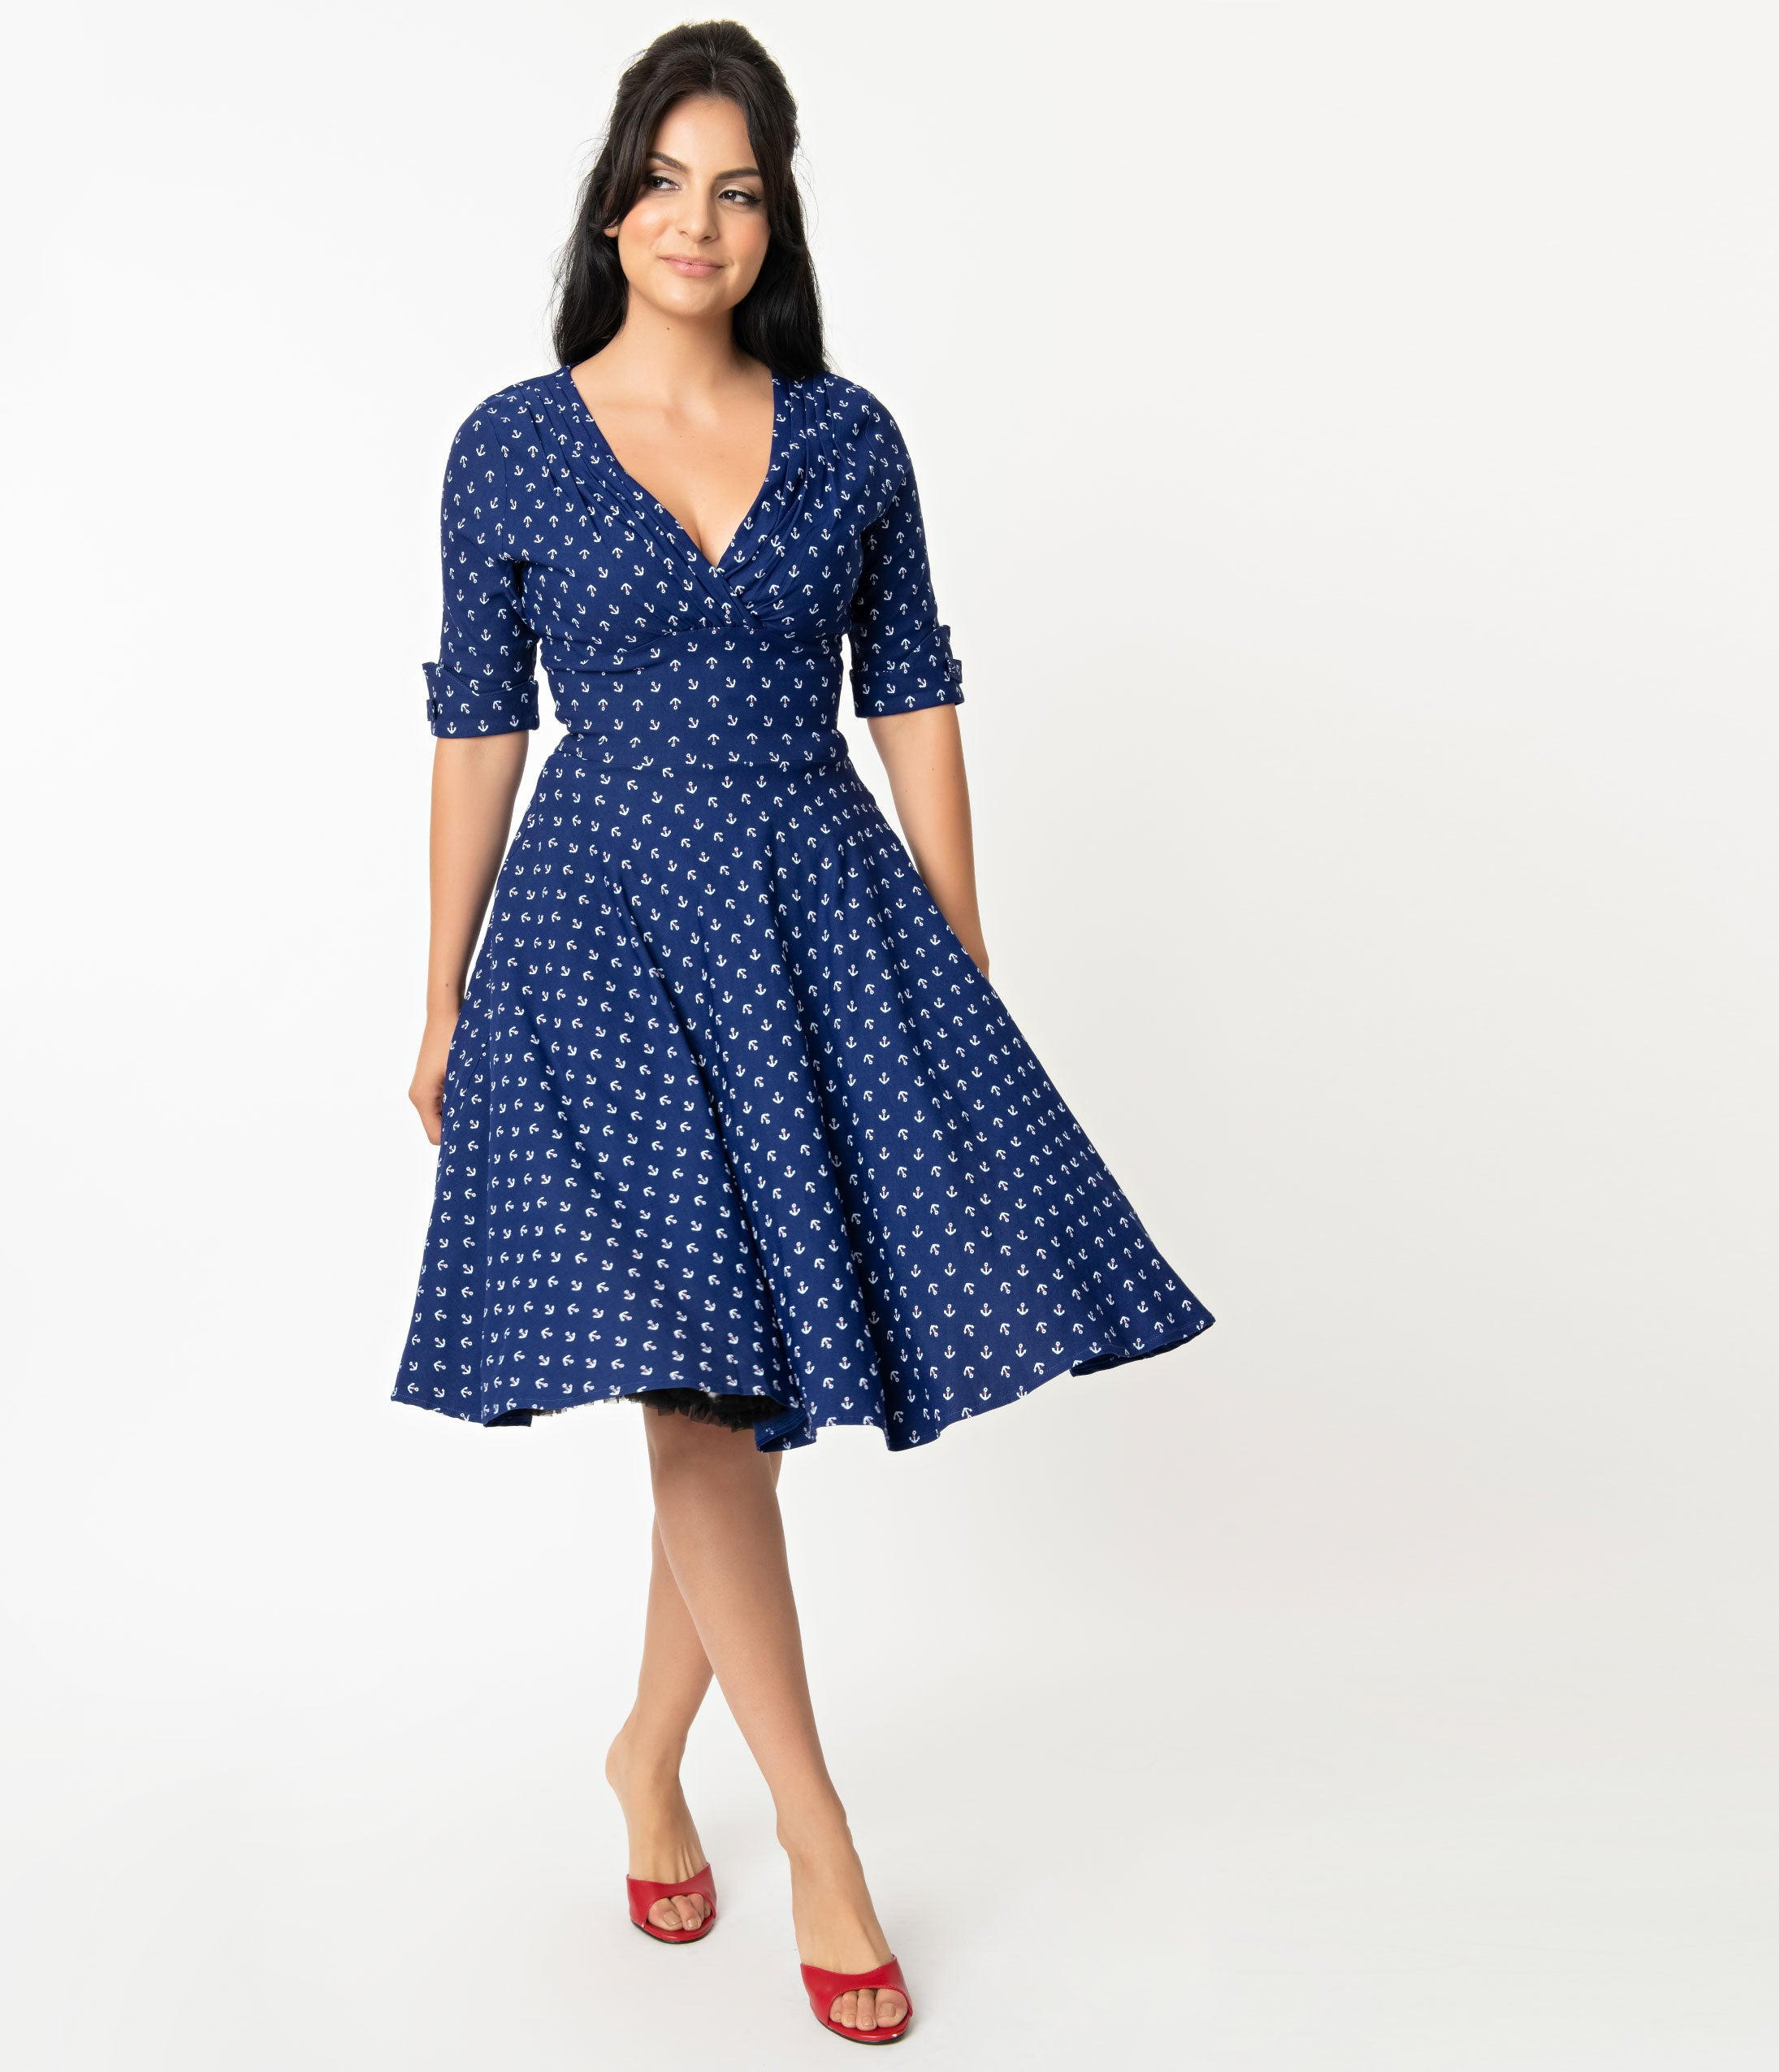 1950s Plus Size Dresses, Swing Dresses Unique Vintage 1950S Blue Anchor Print Delores Swing Dress With Sleeves $92.00 AT vintagedancer.com